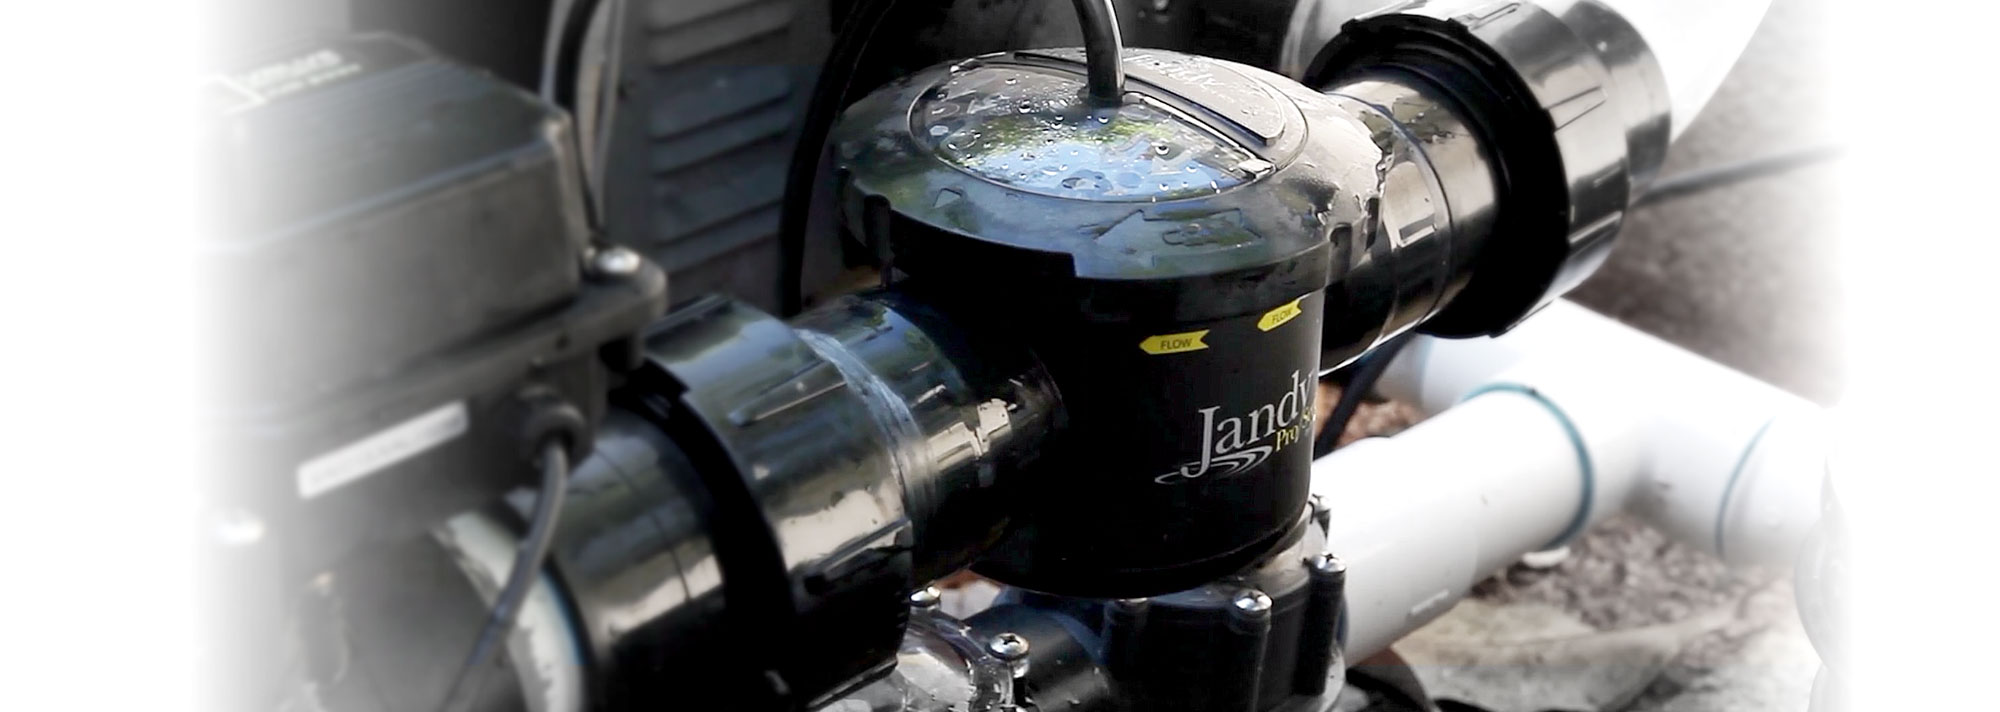 Jandy Equipment in a residential pool pad